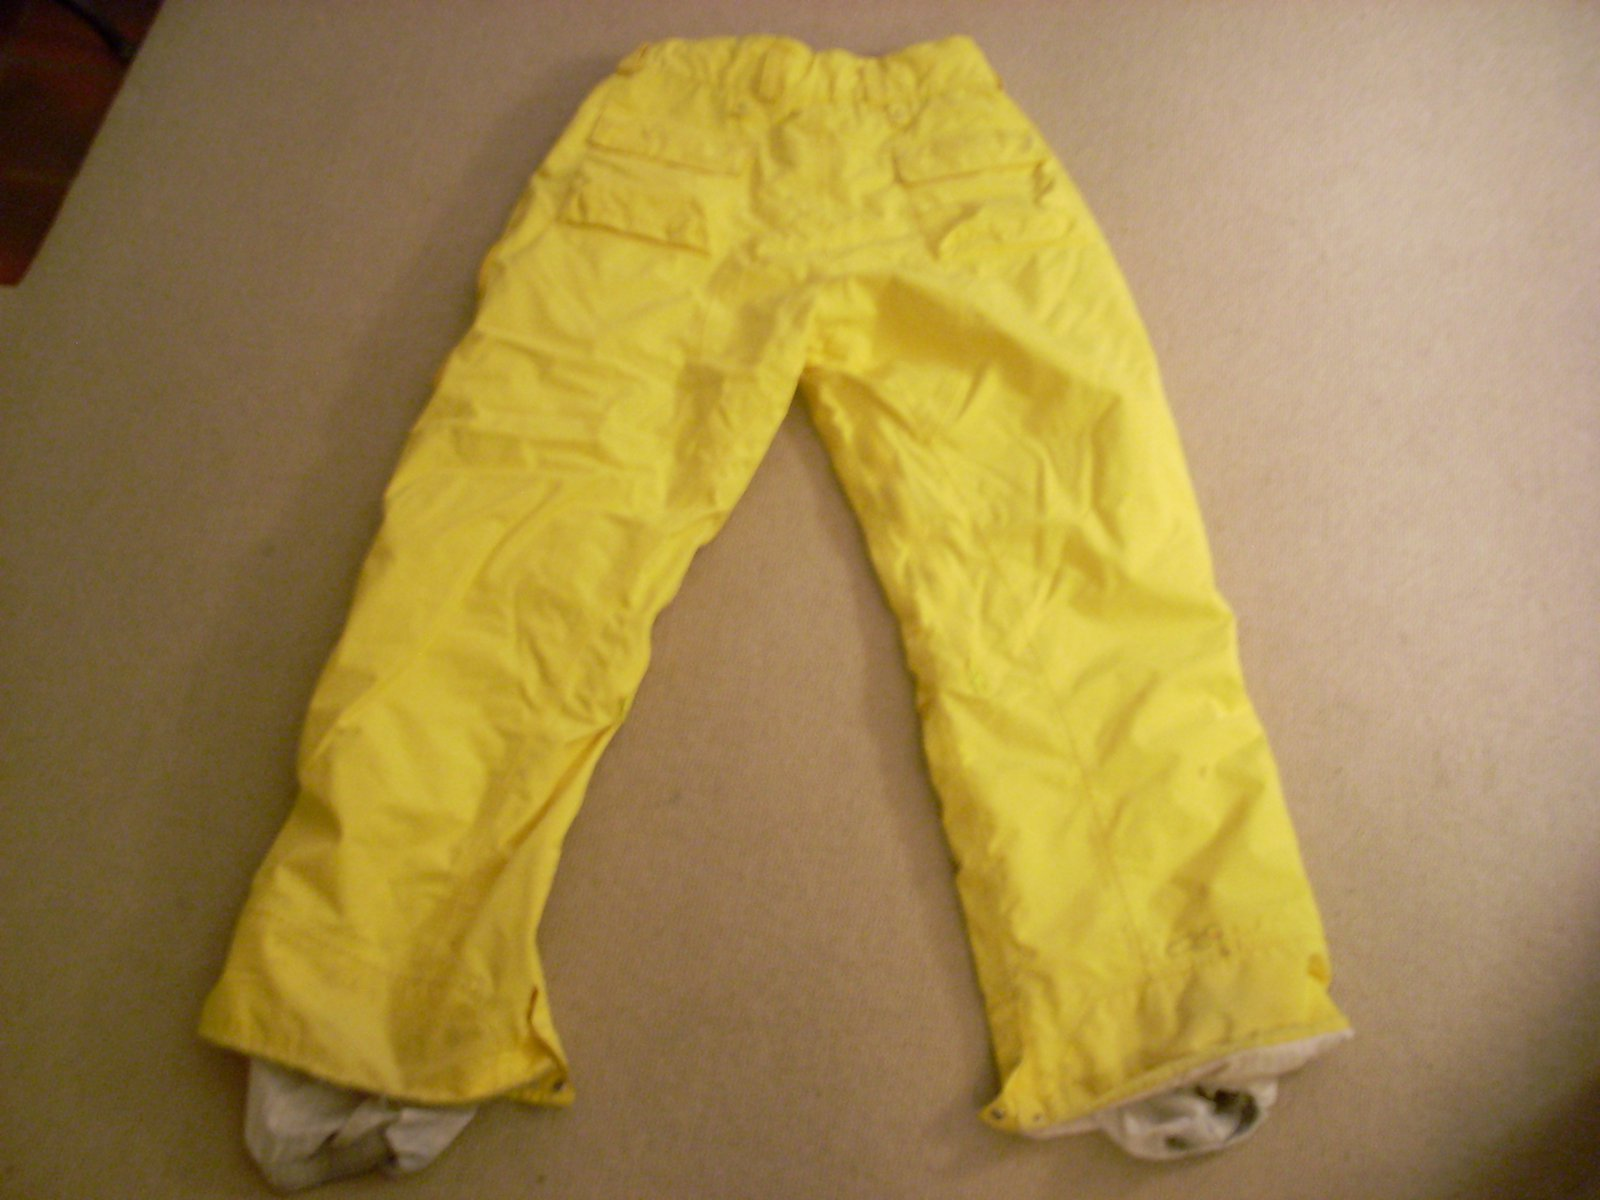 Four Square XL pants